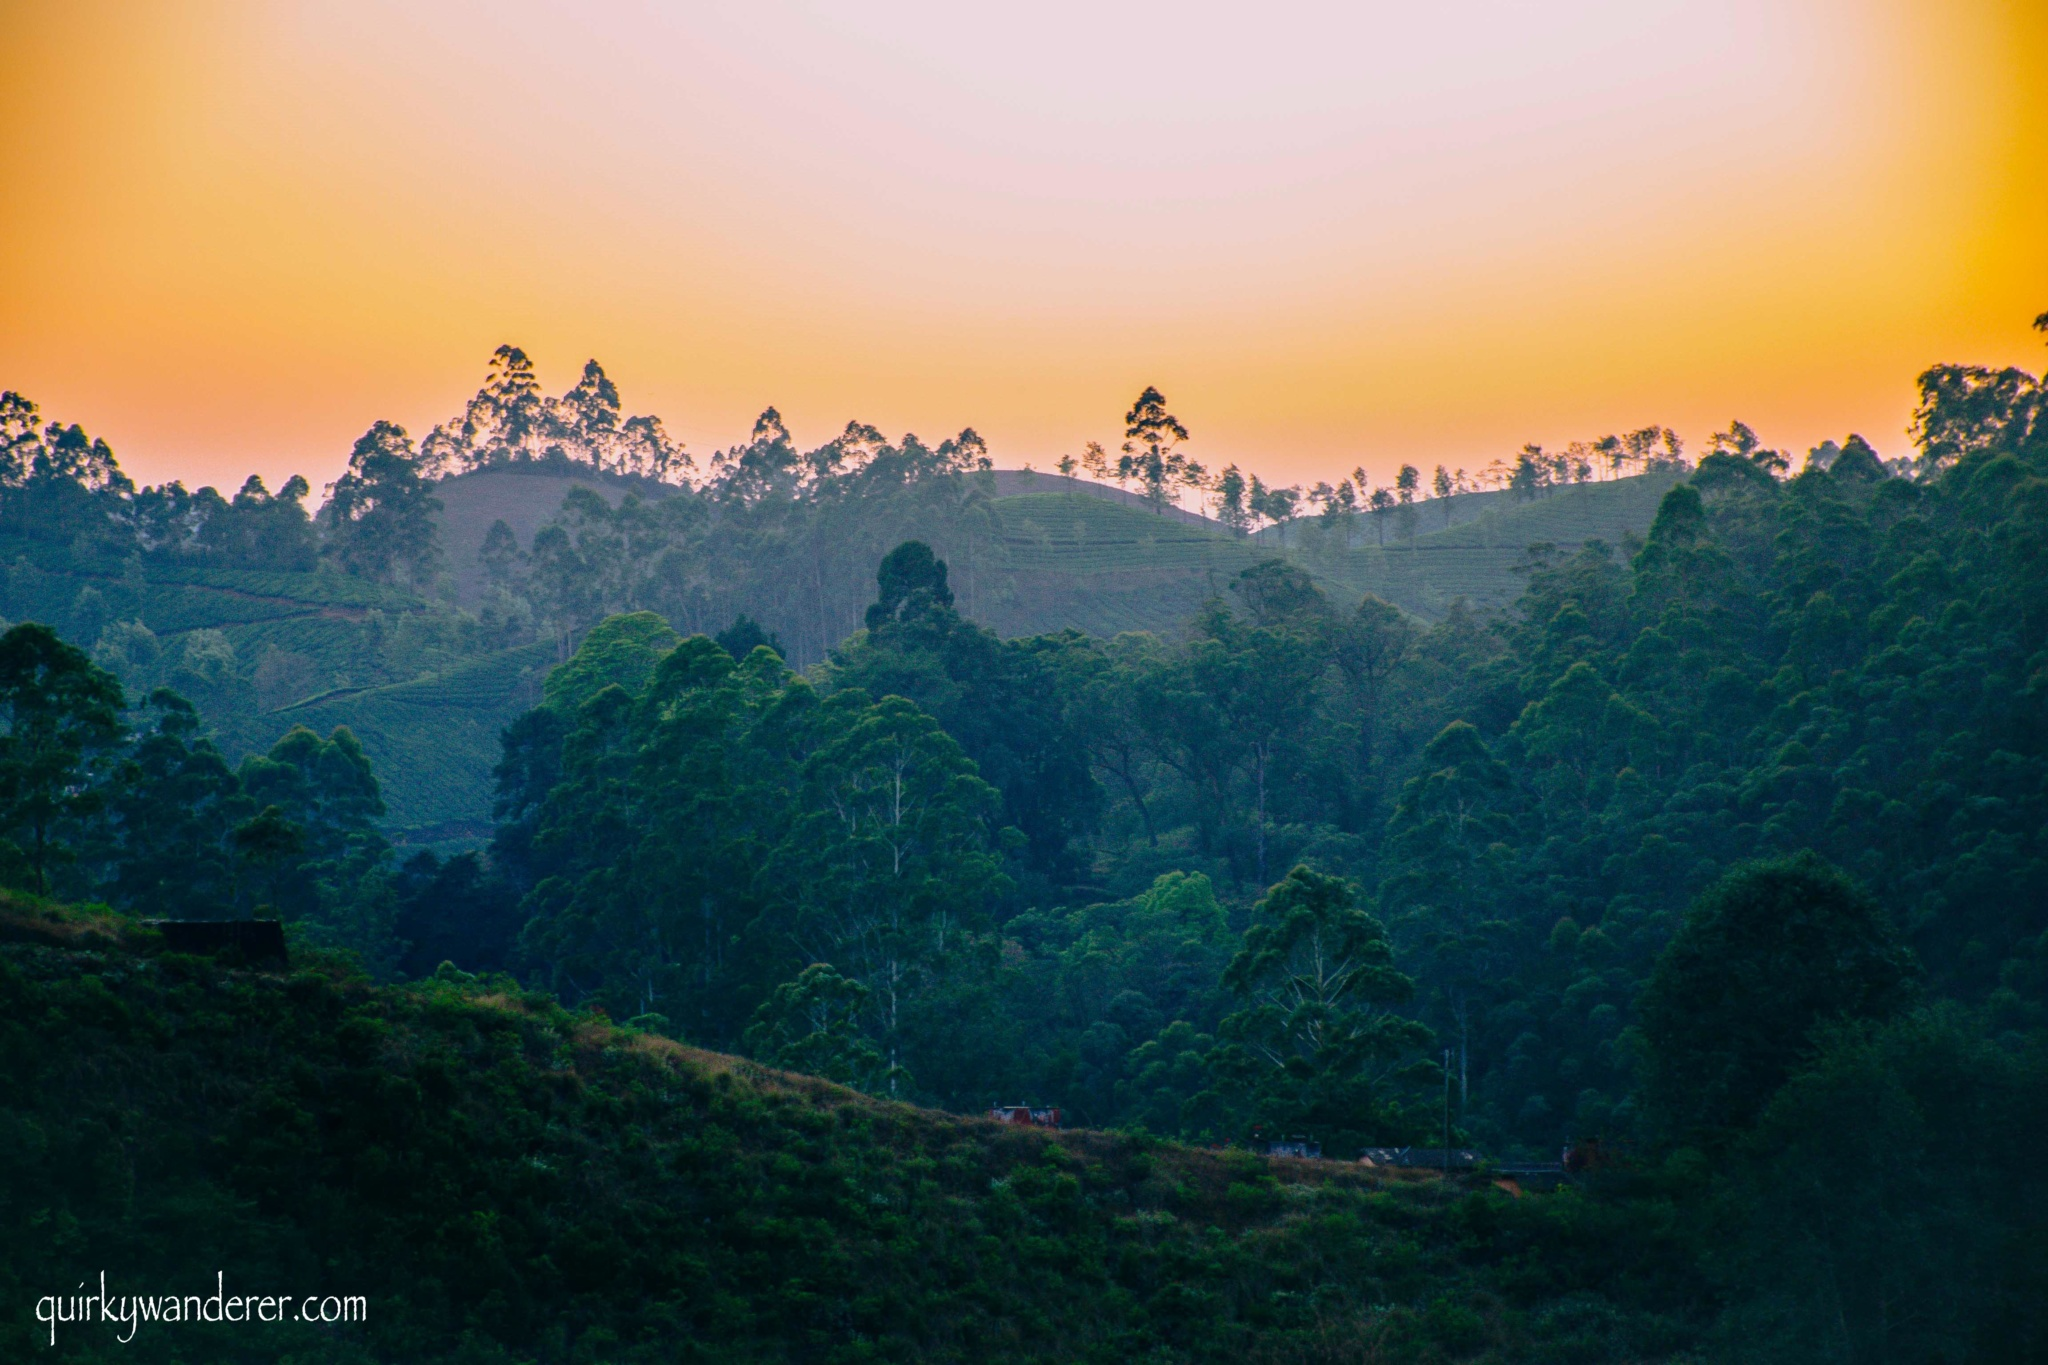 sunset at munnar